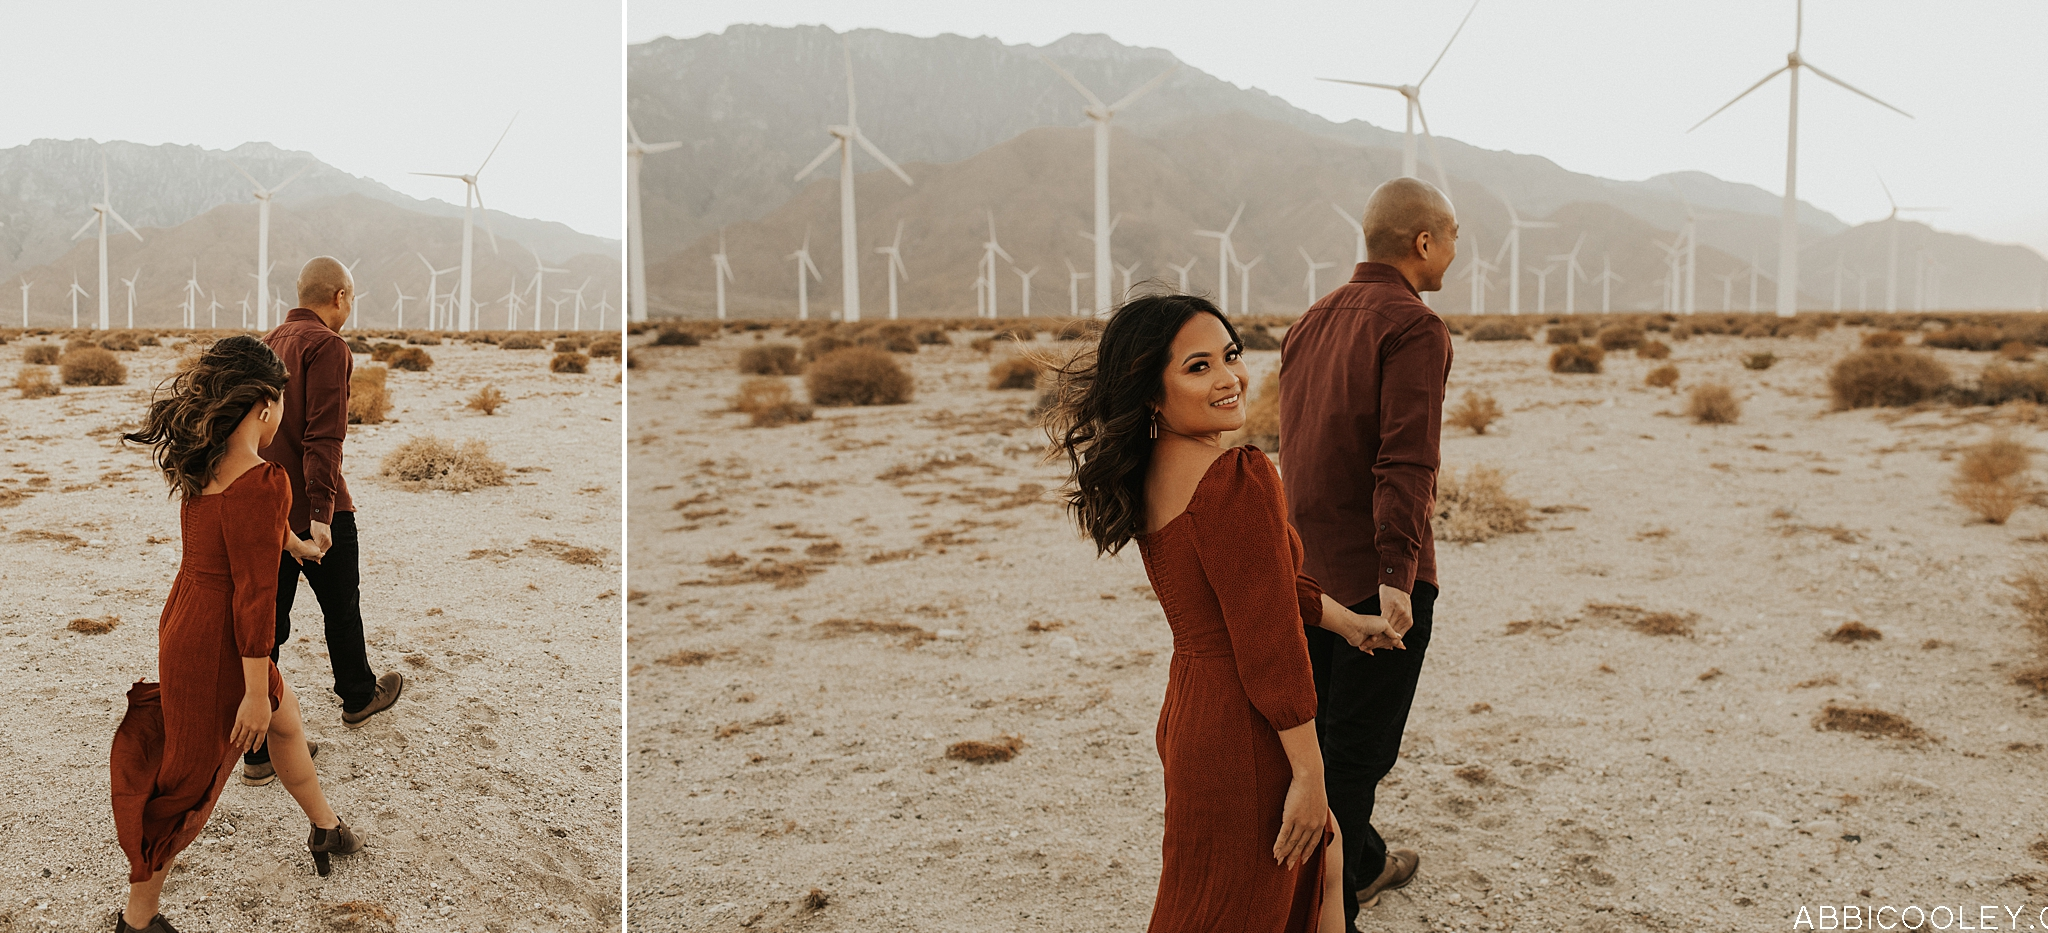 Golden Field Orange County Engagement || Abbi Cooley Photography